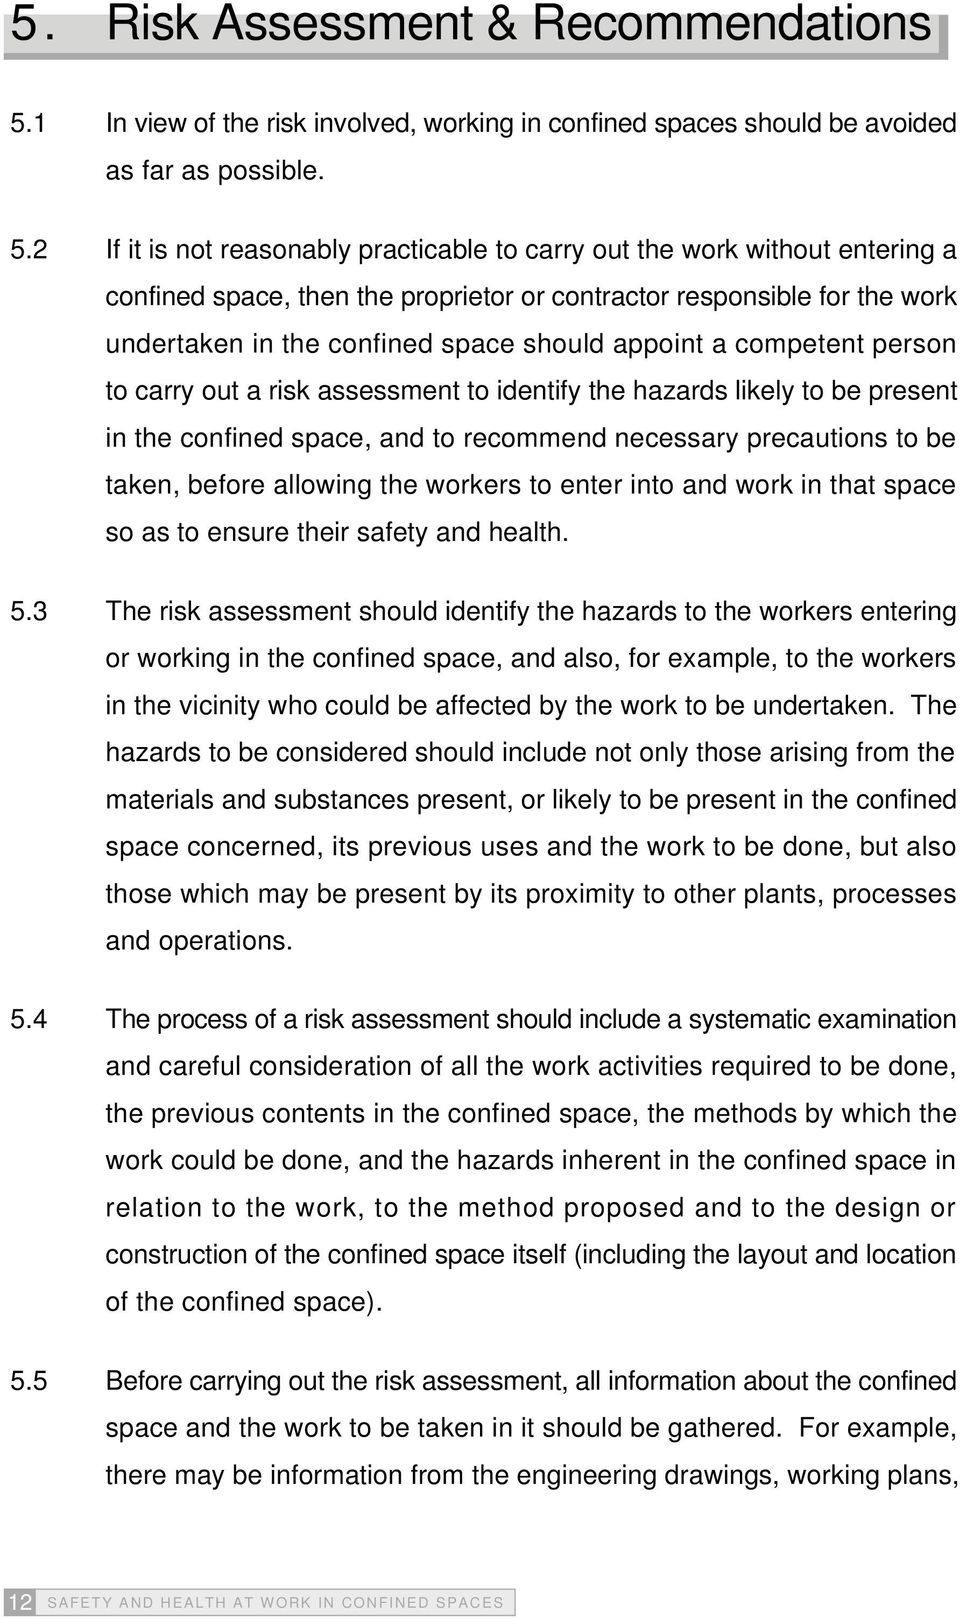 2 If it is not reasonably practicable to carry out the work without entering a confined space, then the proprietor or contractor responsible for the work undertaken in the confined space should